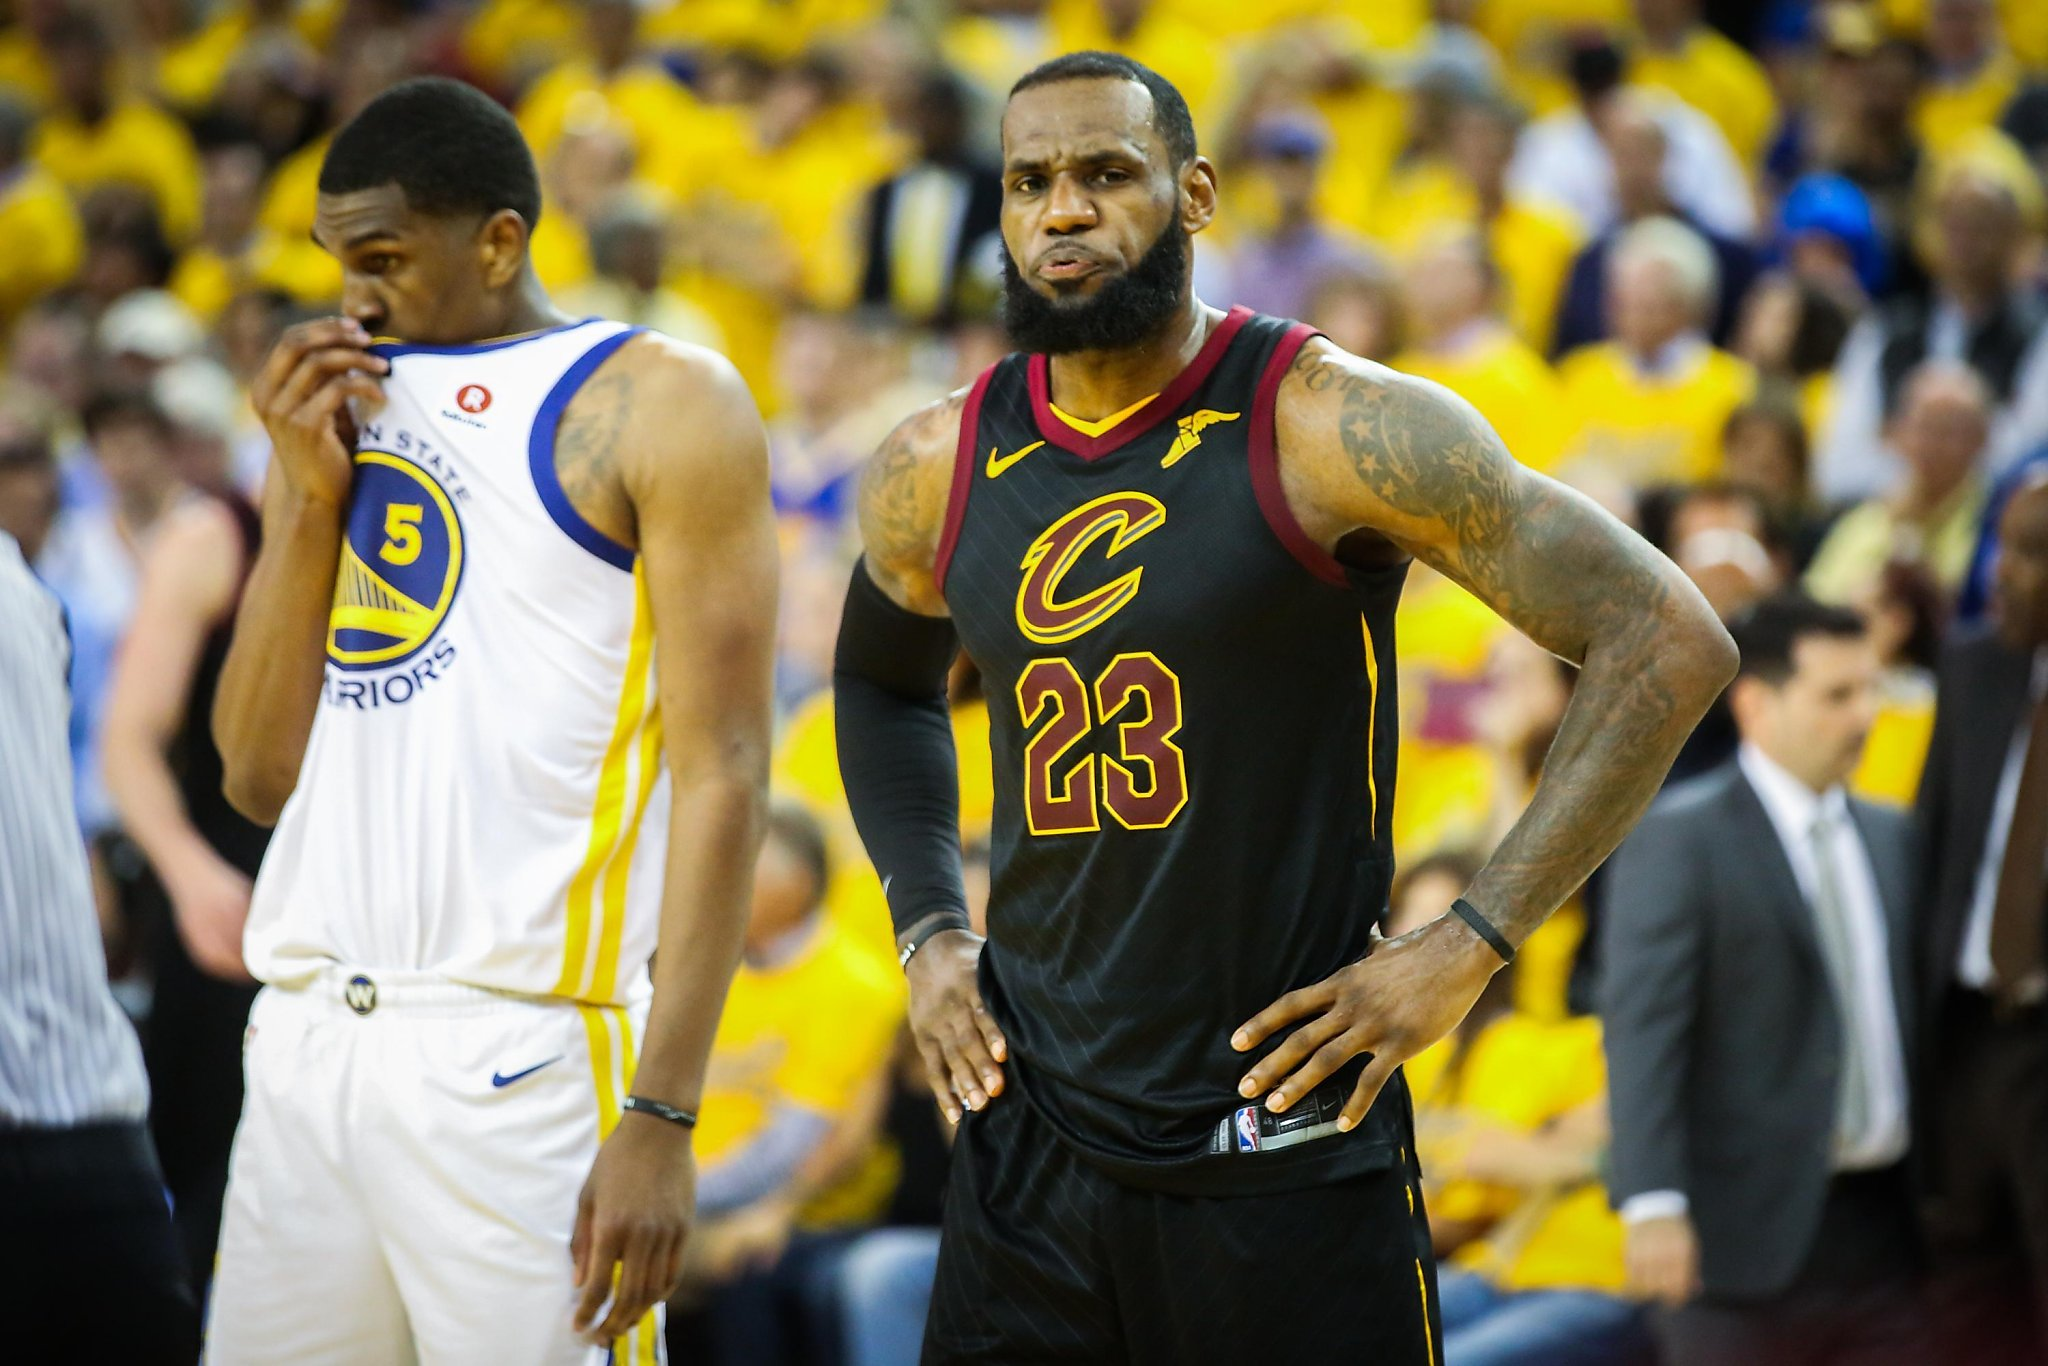 f130b566ca0d Will Cleveland bid farewell to LeBron James on Friday night ...